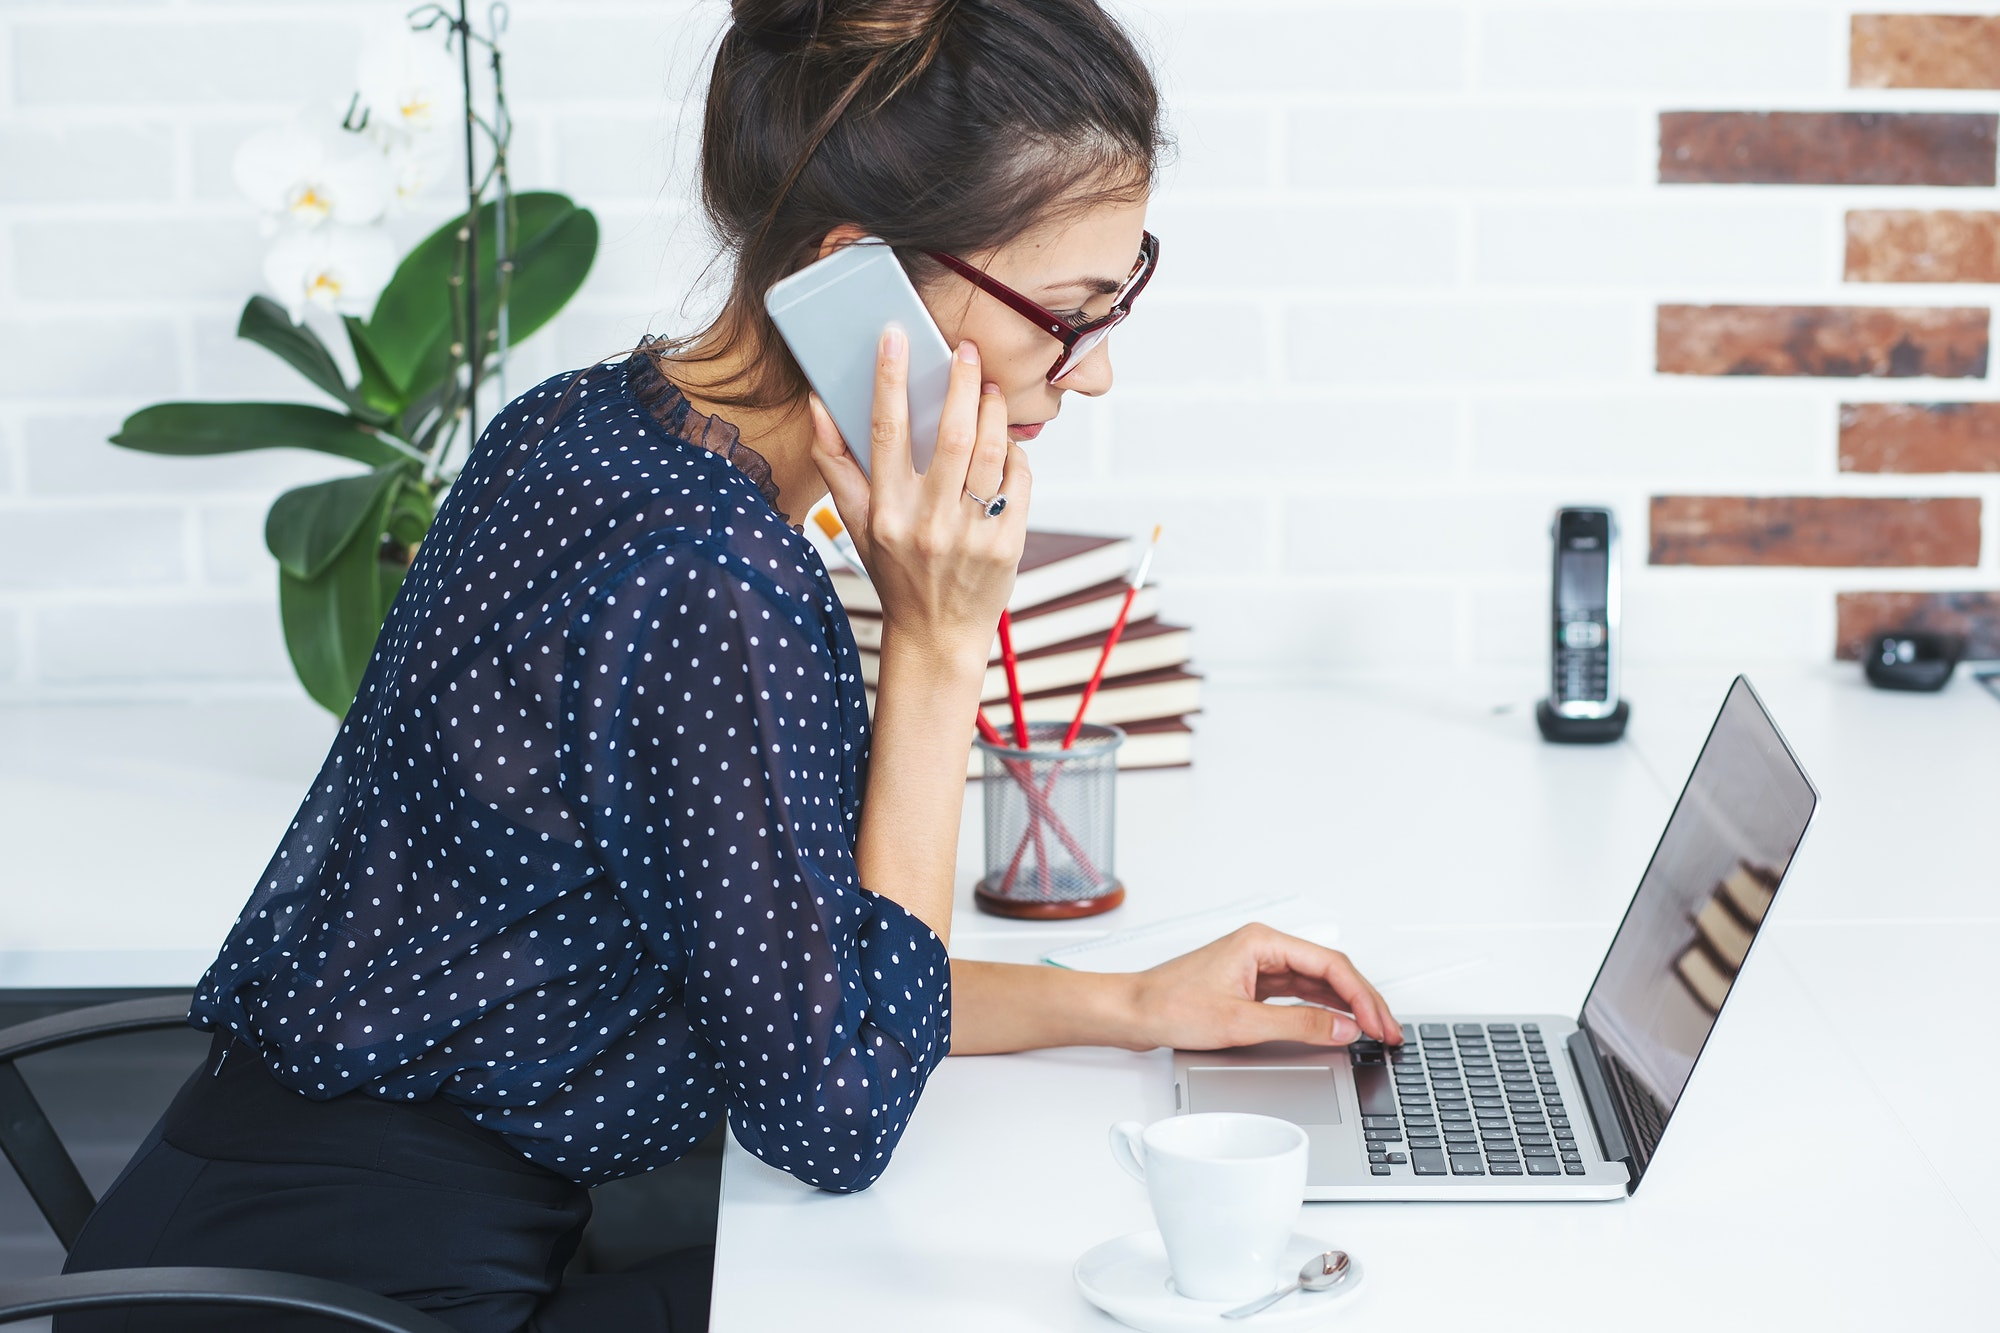 Business woman speaking on phone in the office